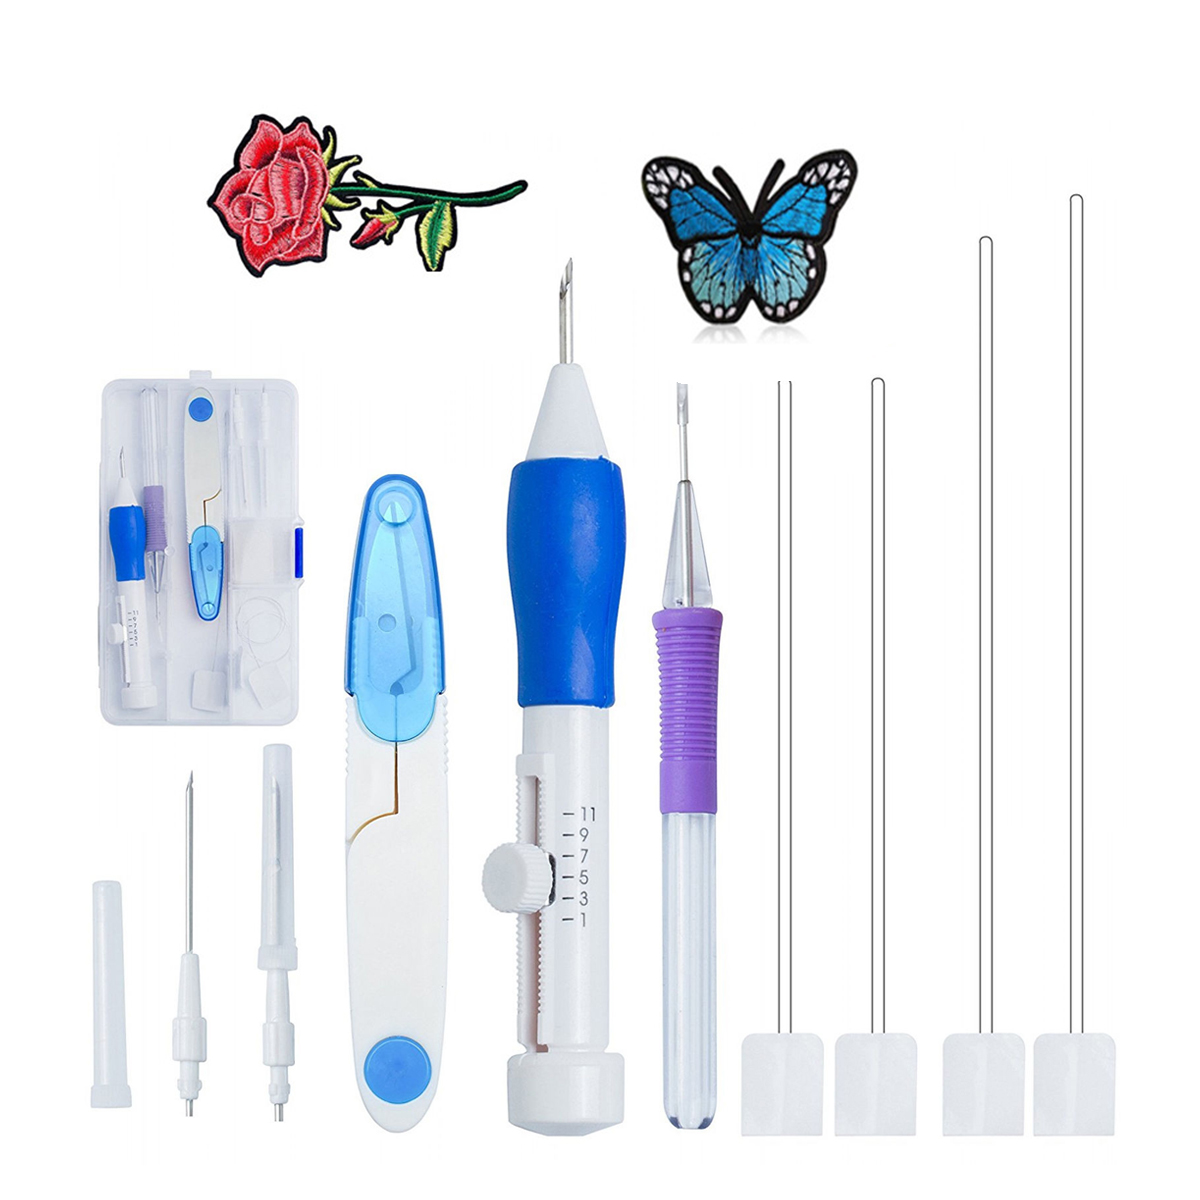 ABS Plastic Diy Magic Embroidery Pen Set Adjustable Knitting Sewing Tool Kit Punch Needle